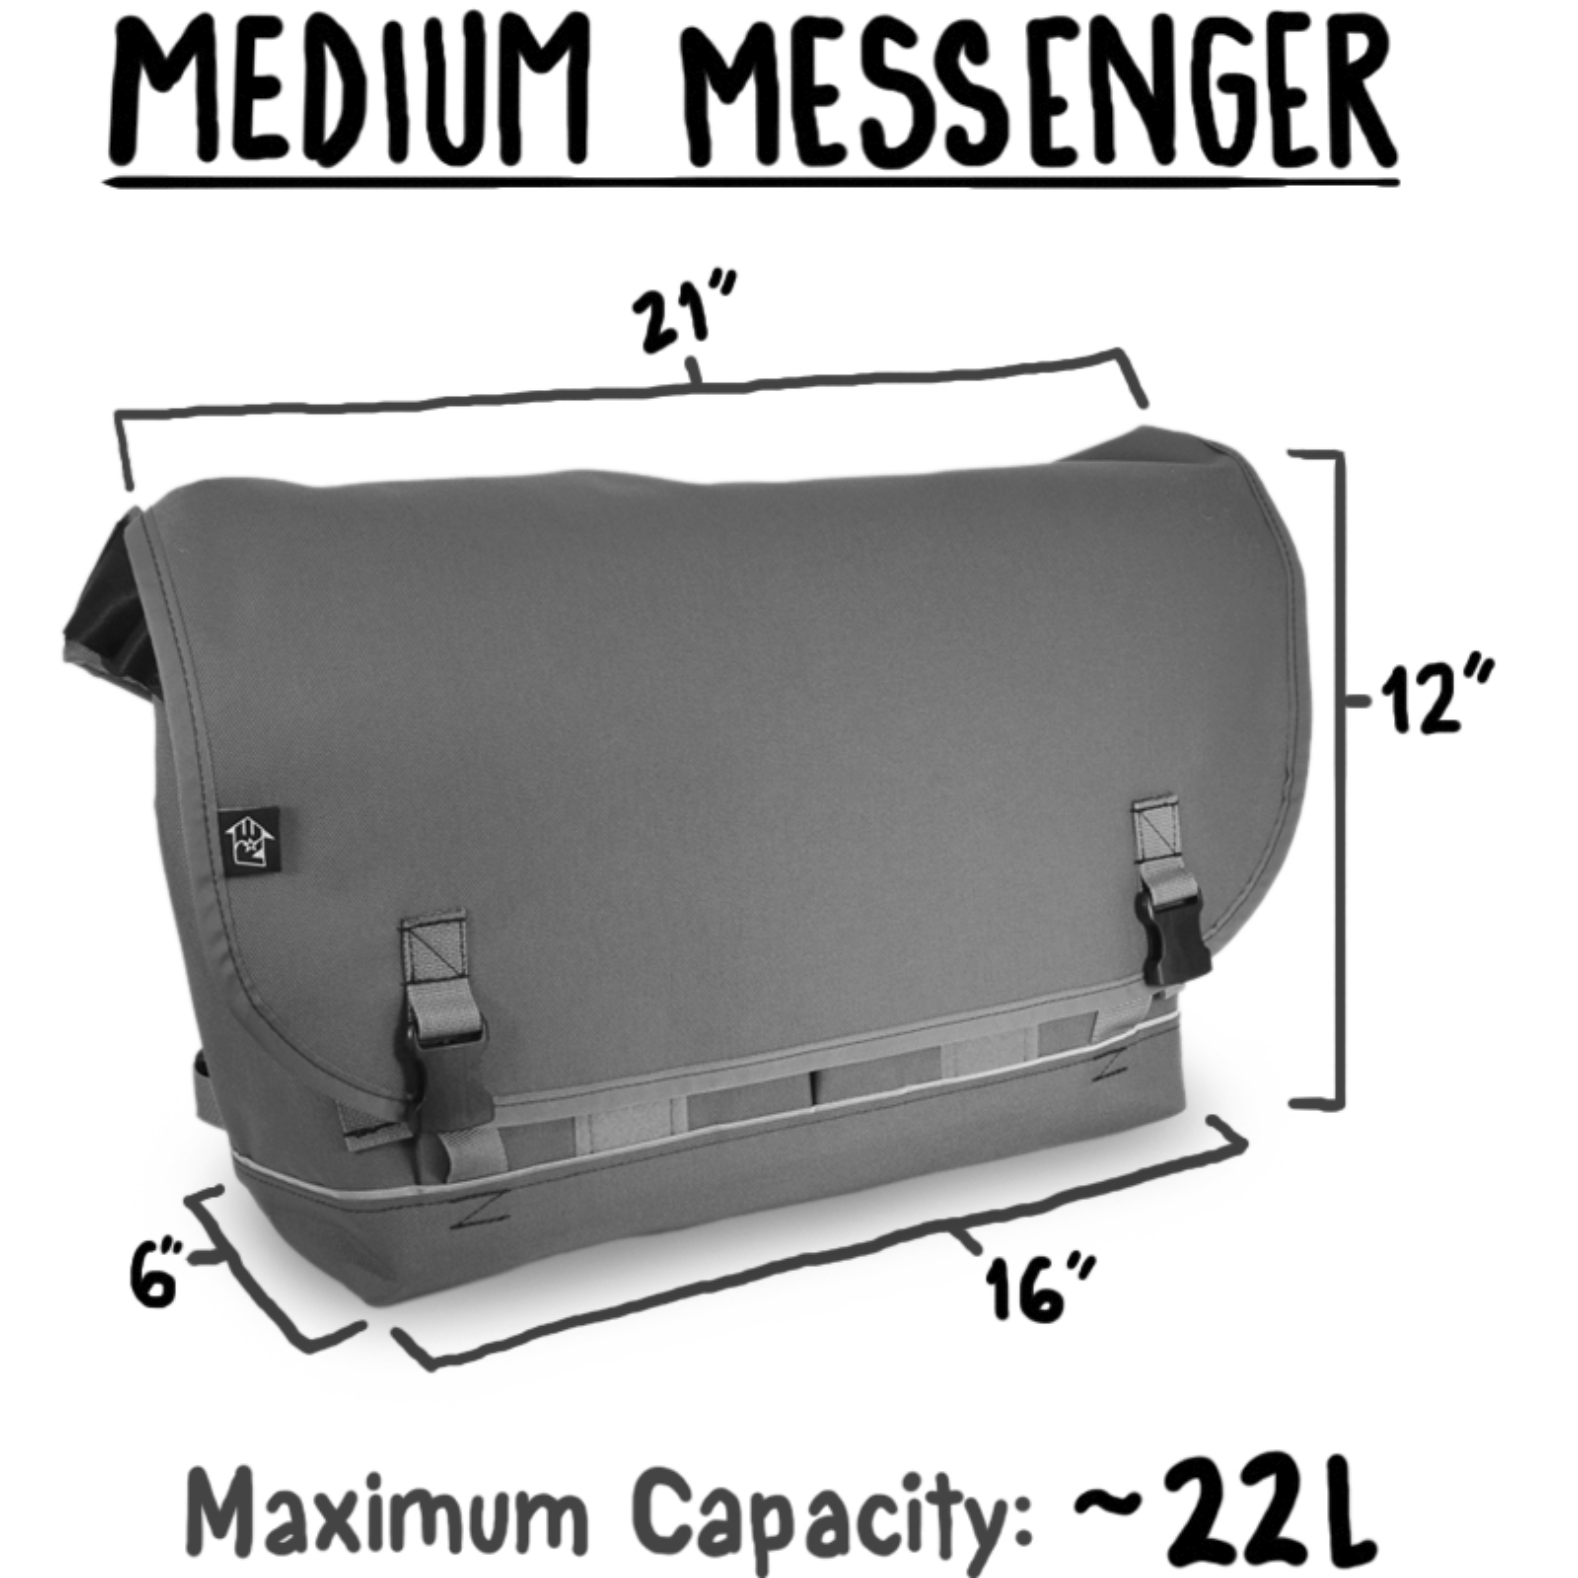 reload messenger medium.png